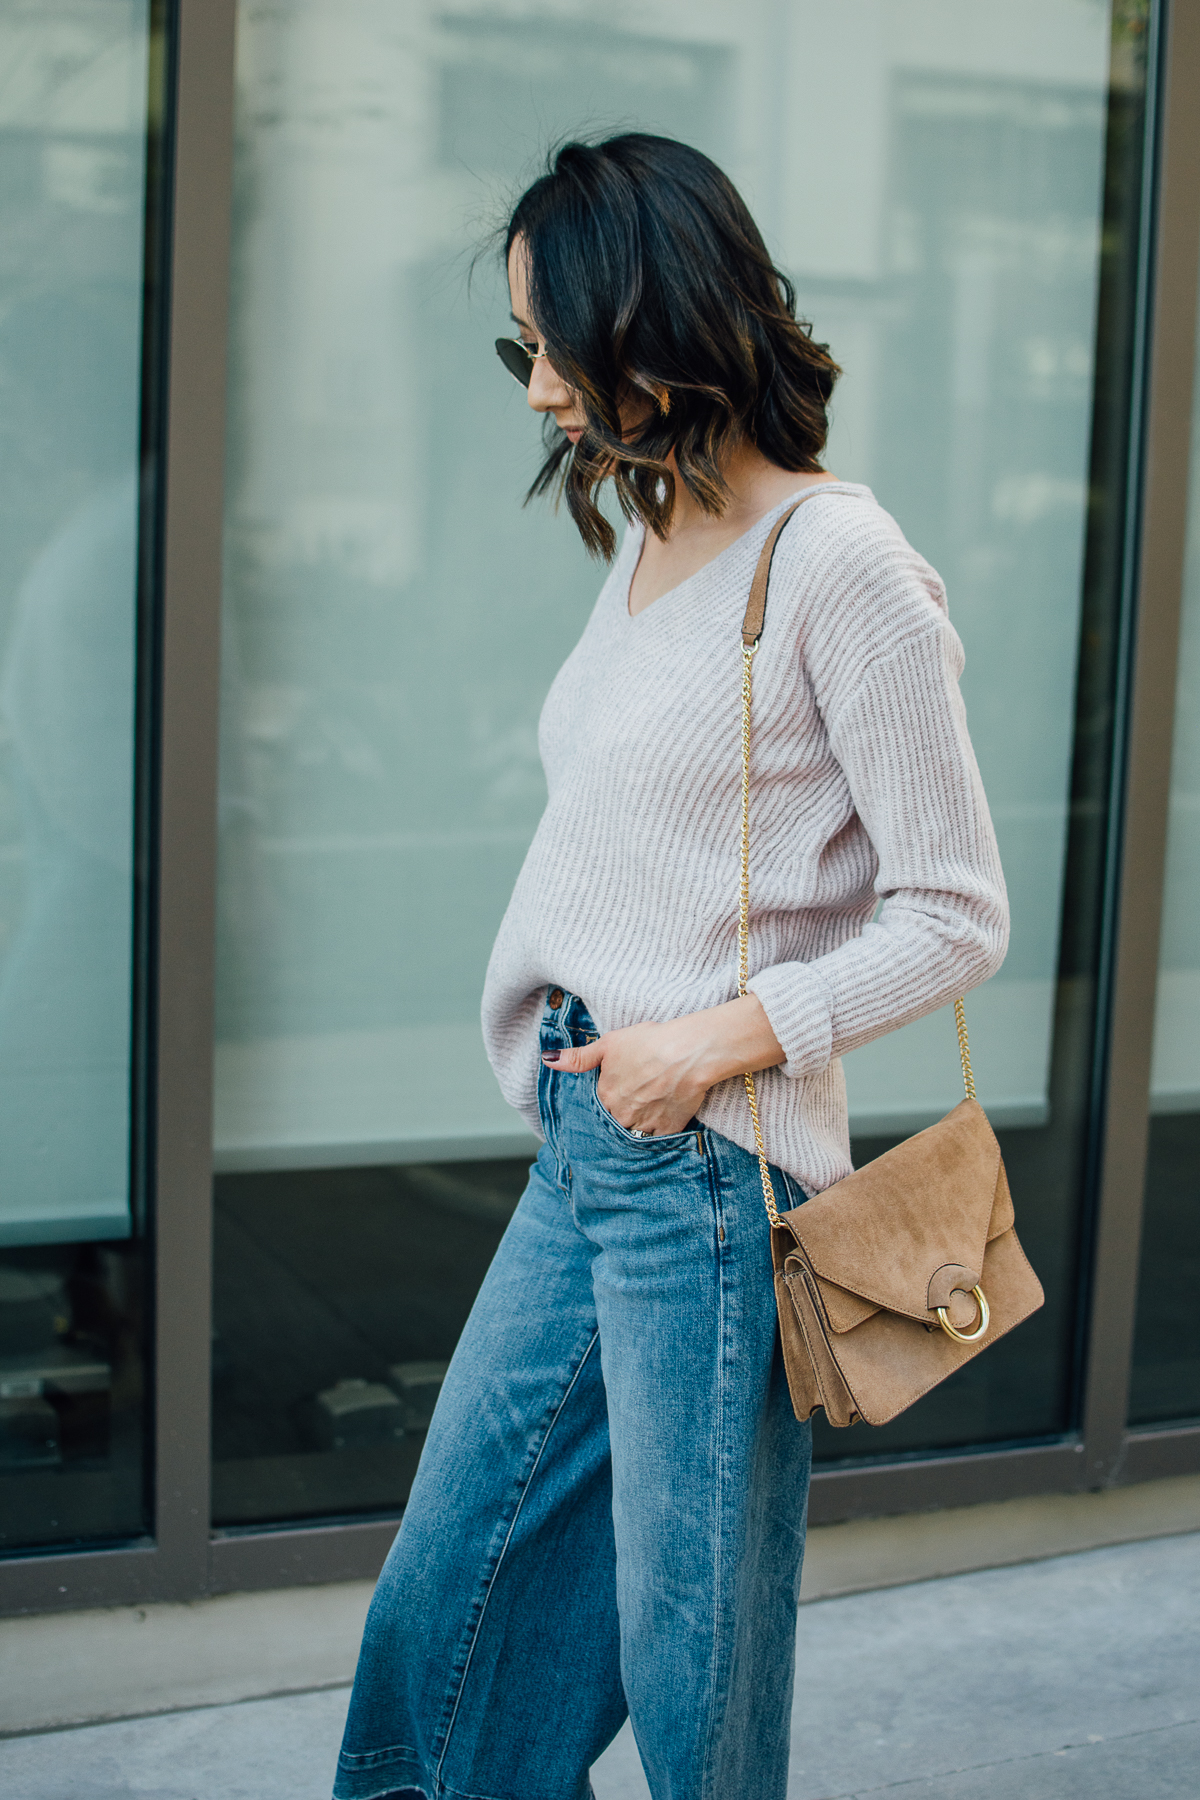 Messy waves & cozy wool sweater